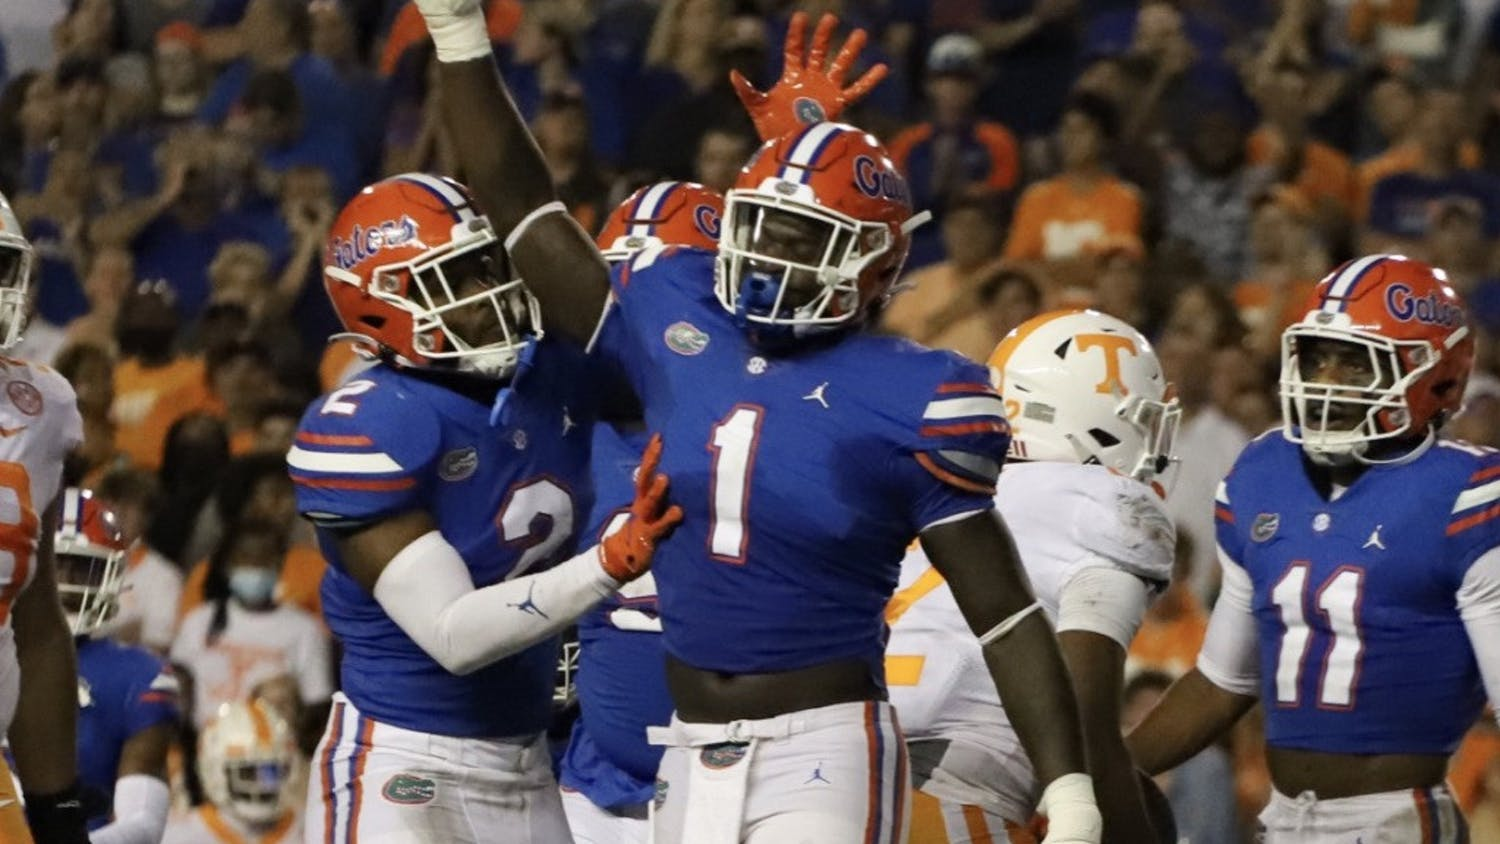 Florida's Brenton Cox celebrates during a play in a game against Tennessee on Sept. 18.